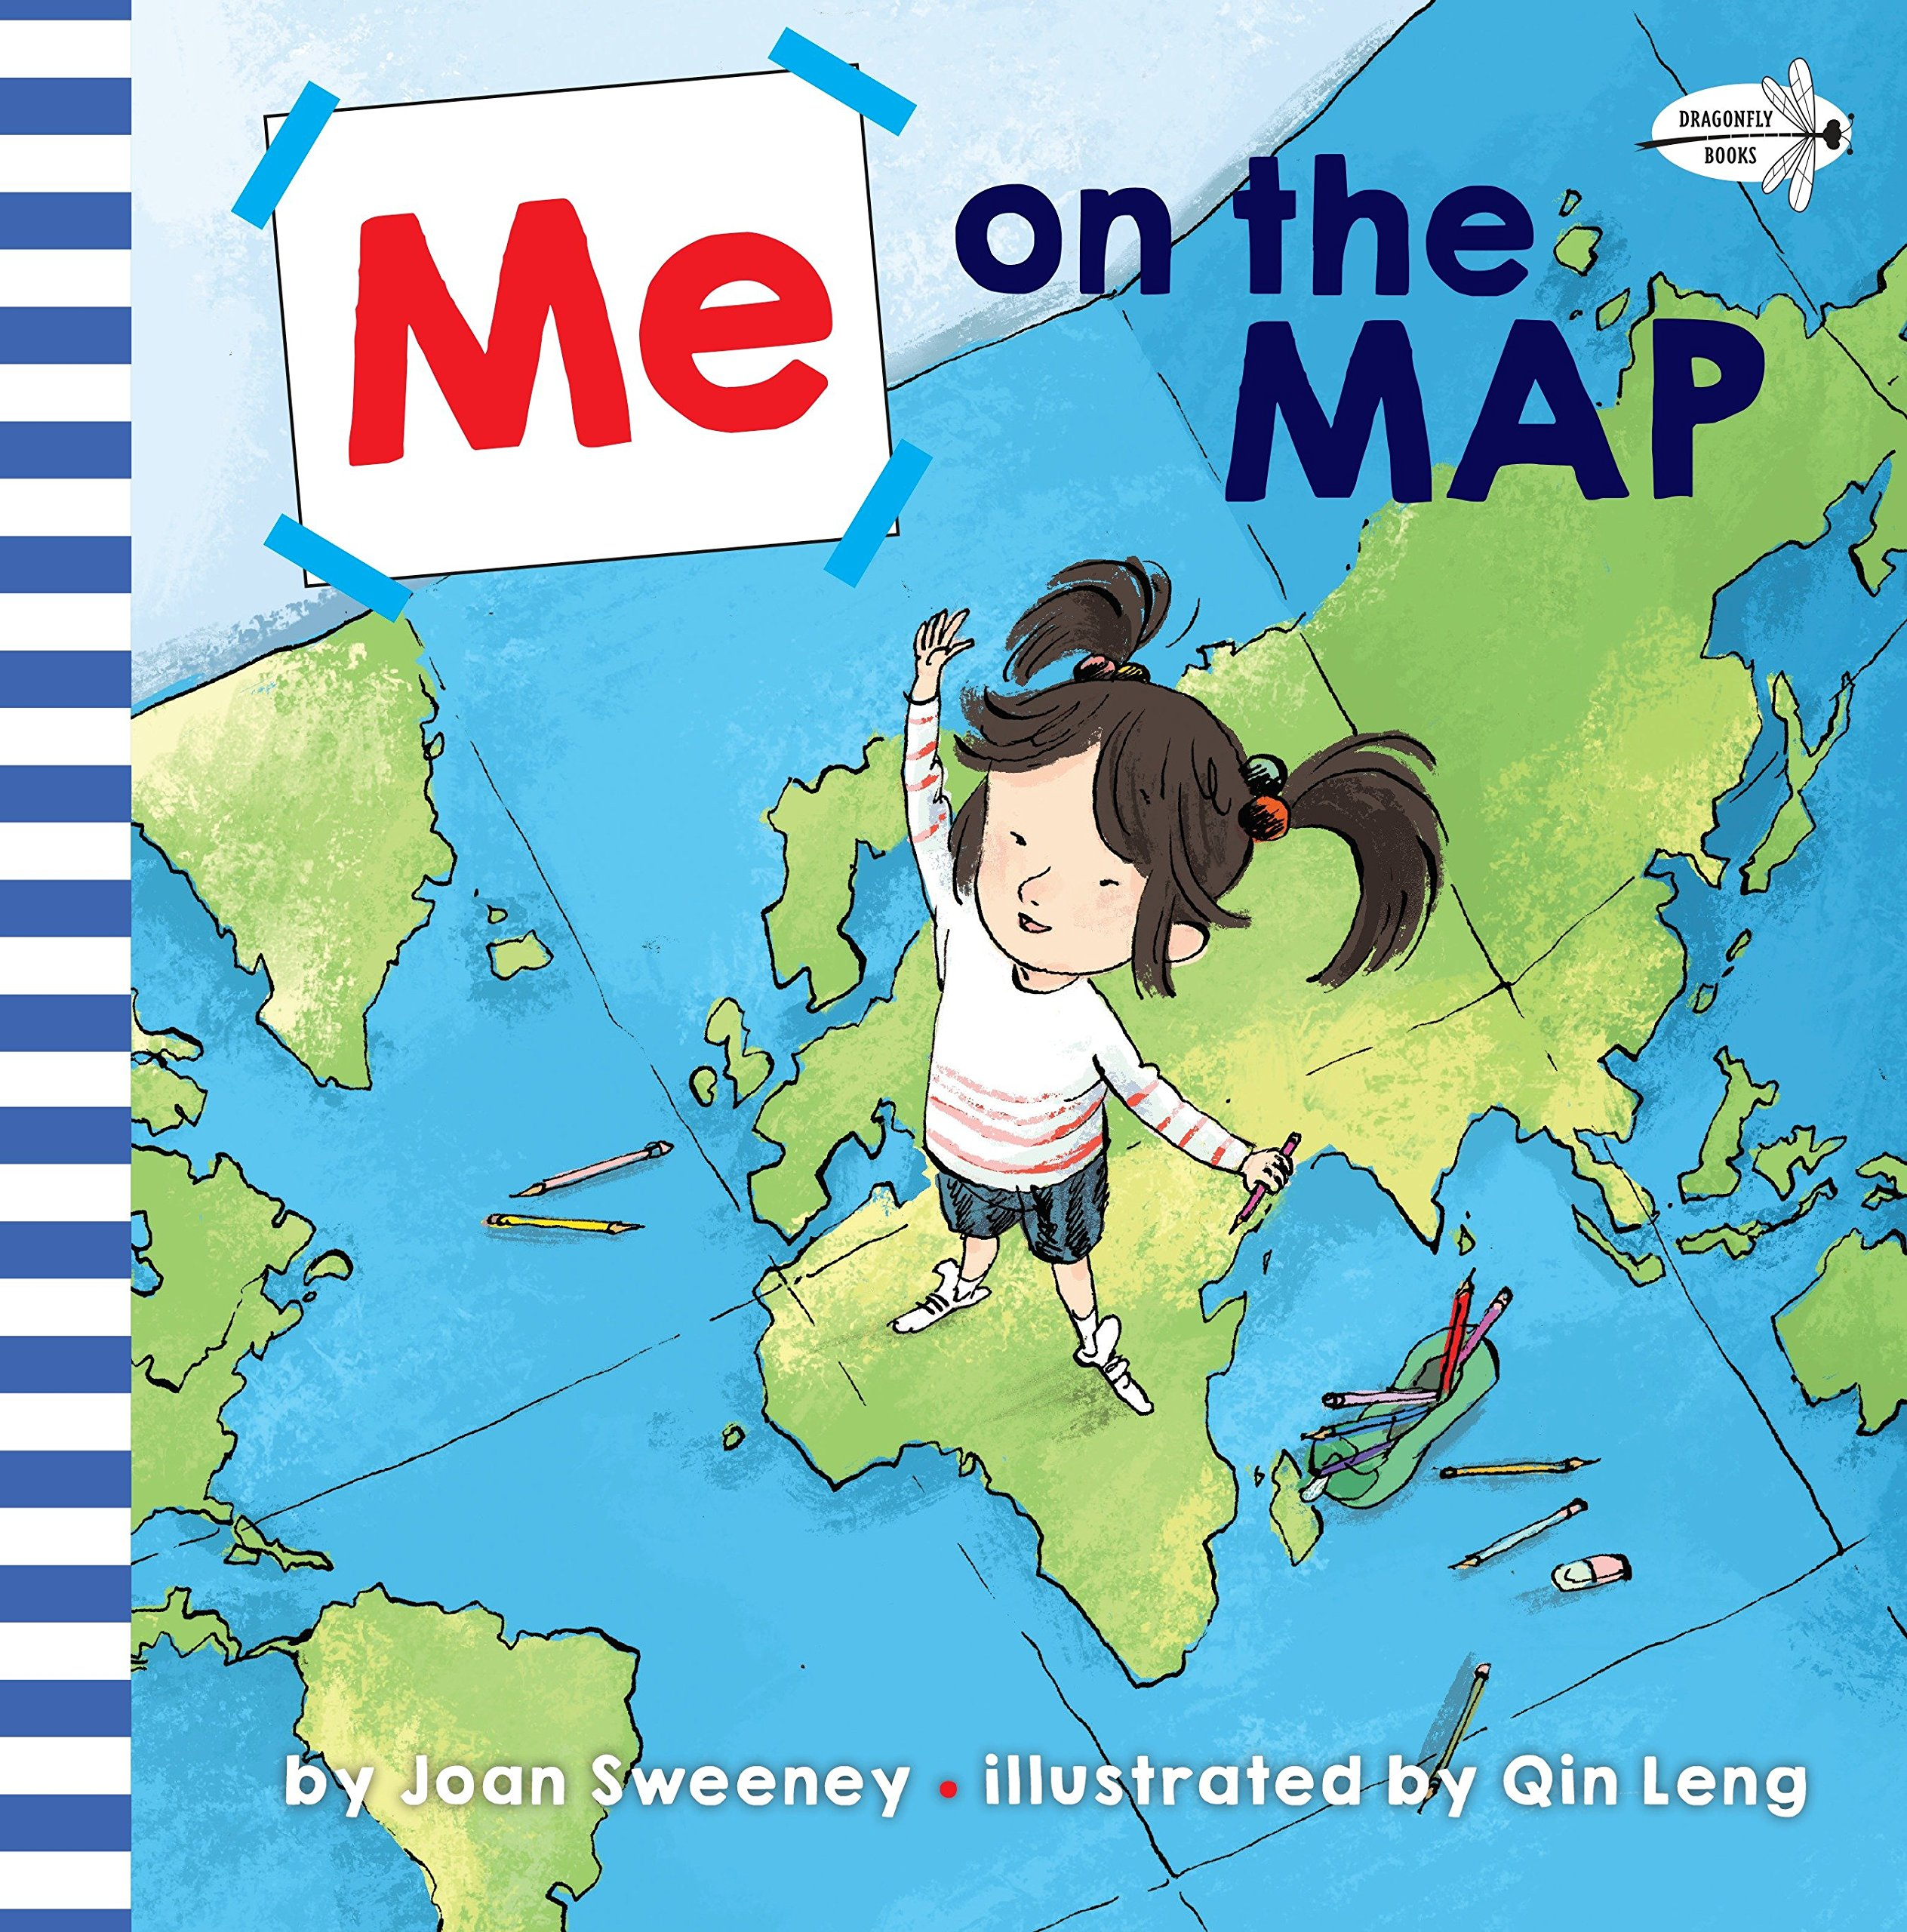 Show Me On The Map Me on the Map: Joan Sweeney, Qin Leng: 9781524772017: Amazon.